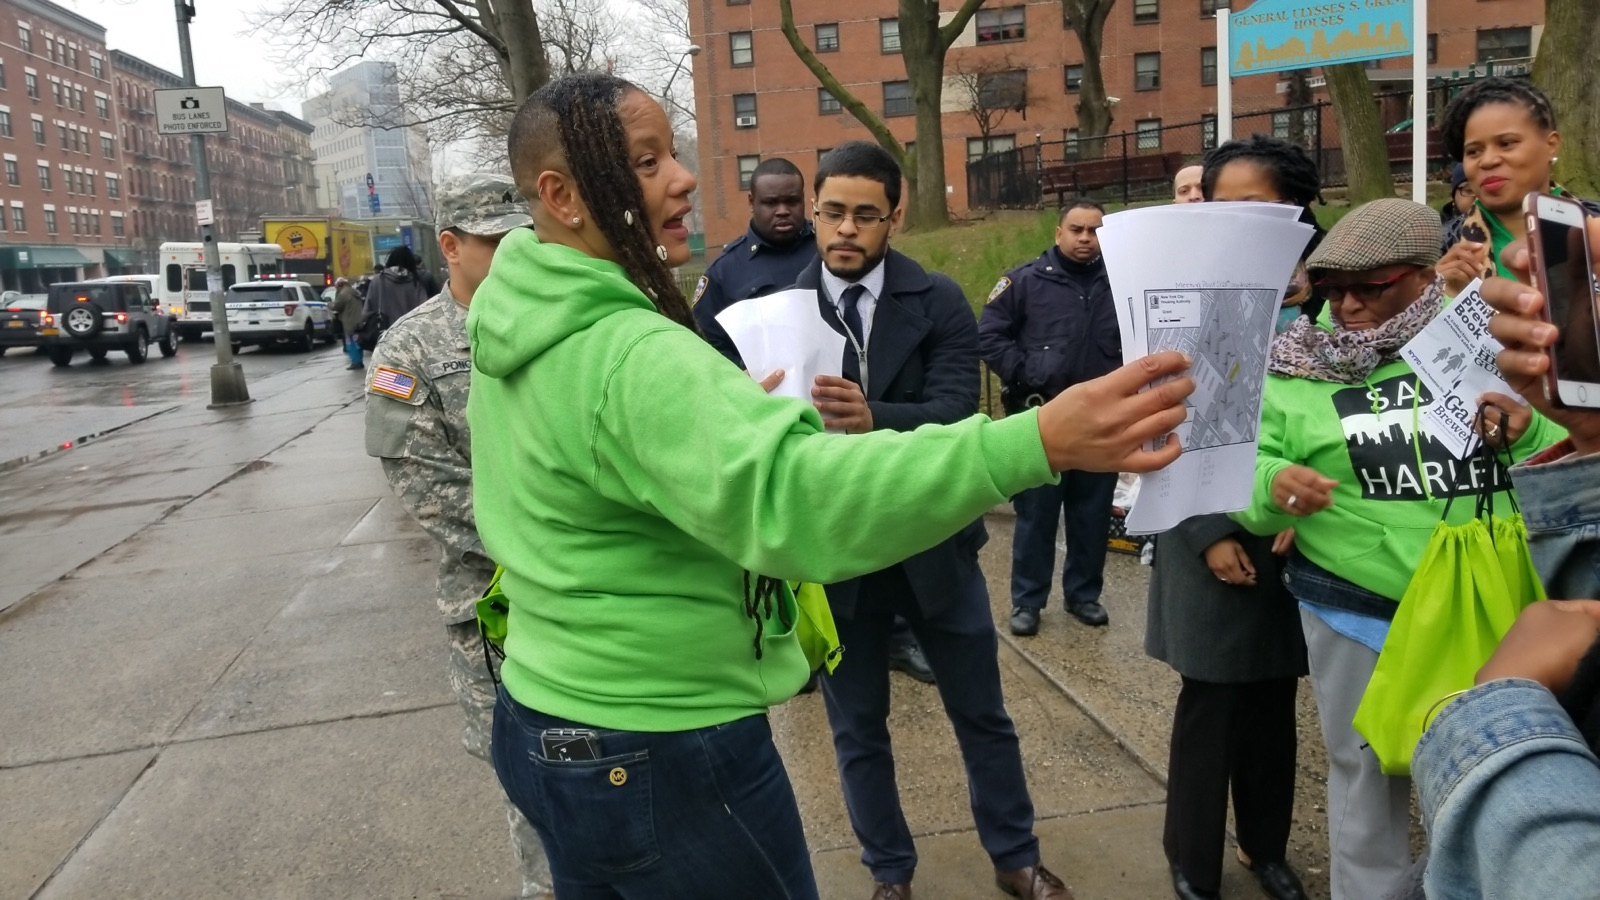 The PILLARS Chief Executive Officer, Felecia Pullen, rallying the team outside of the Ulysses. S. Grant Houses.